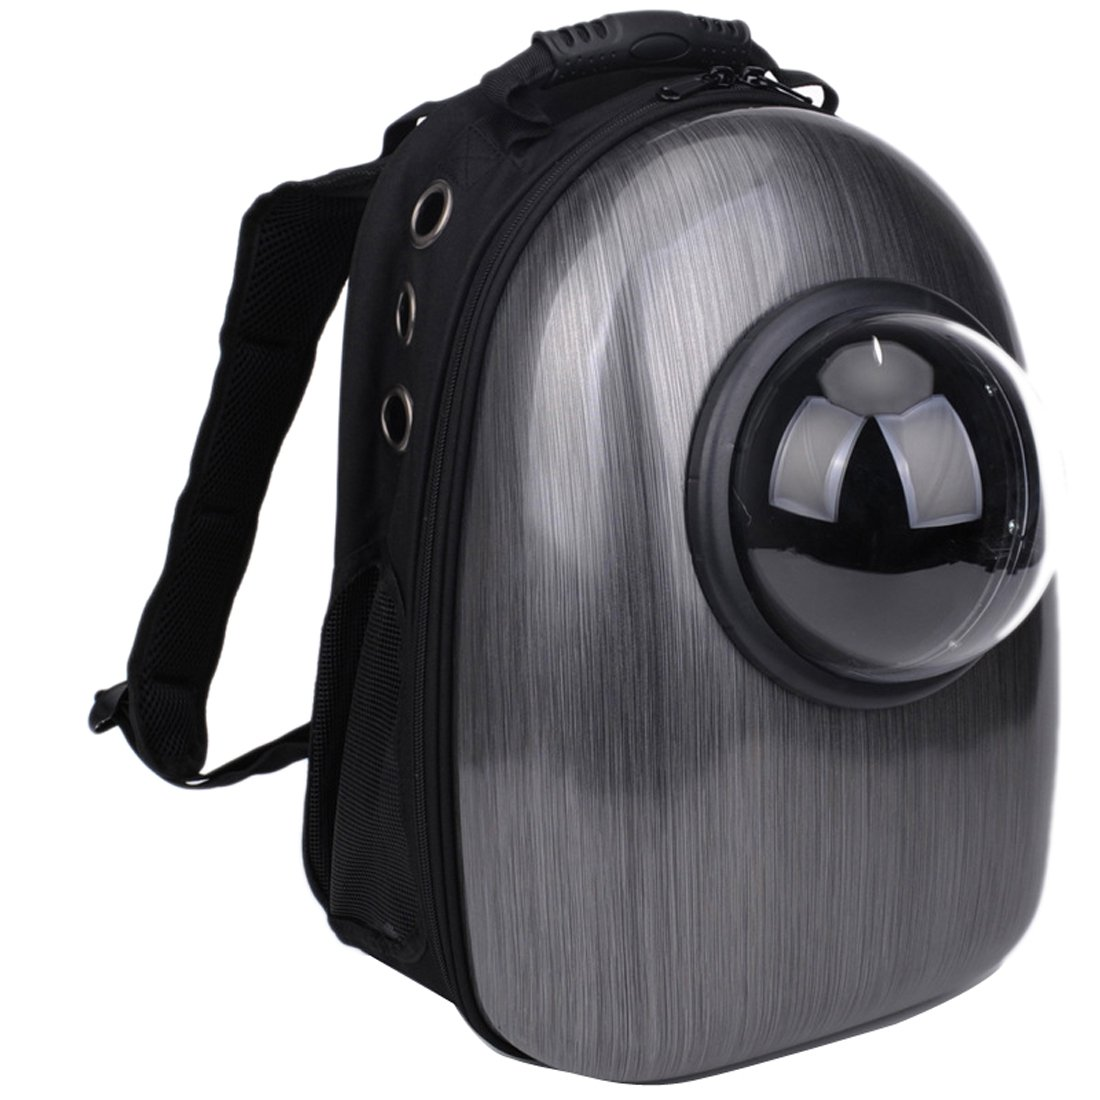 Bubble Backpack Pet Carriers Innovative Traveler for Cats Dogs Pet Portable Carrier Space Capsule Backpack